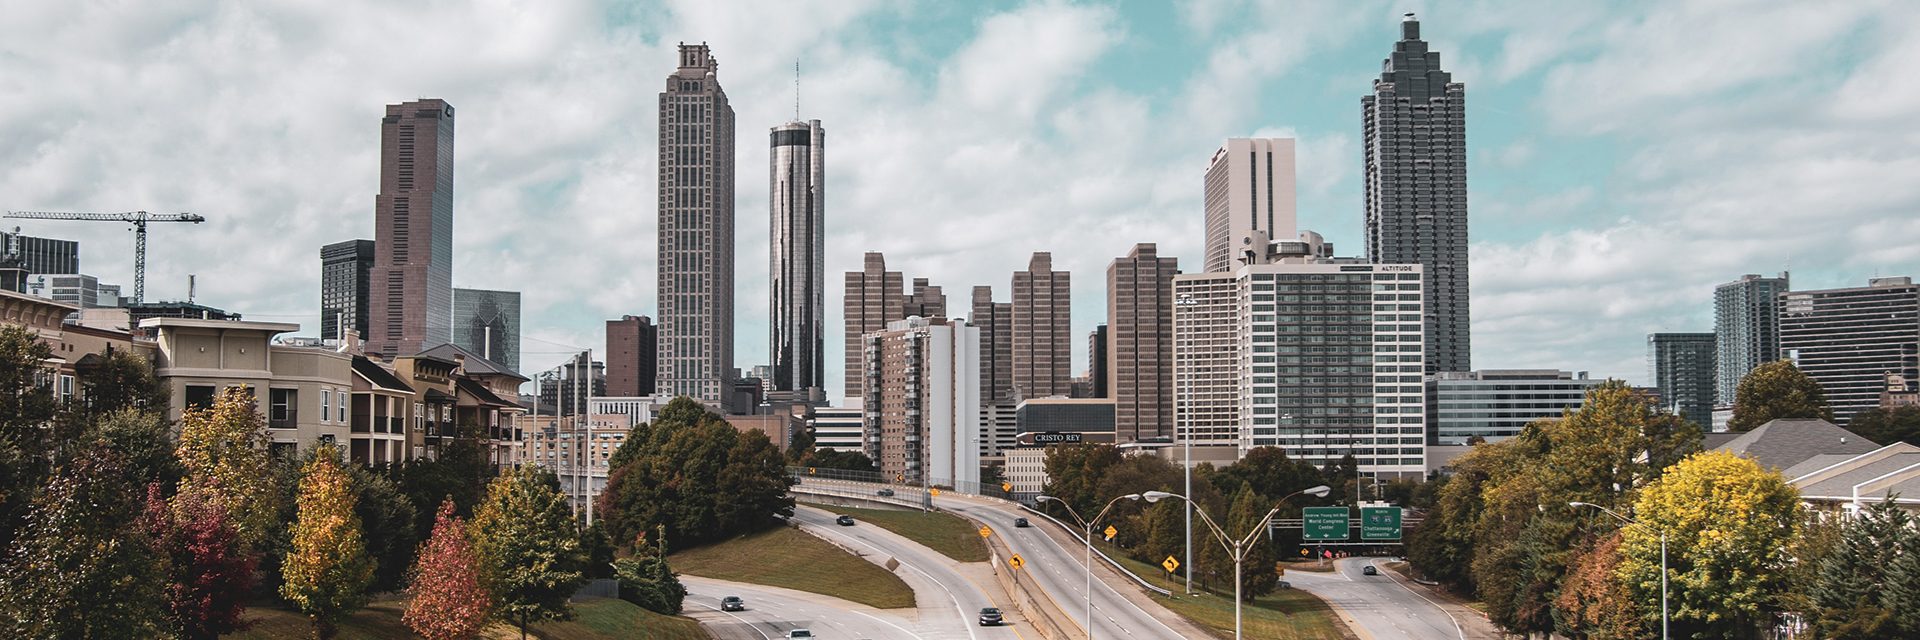 The Atlanta skyline with a highway leading towards the buildings.